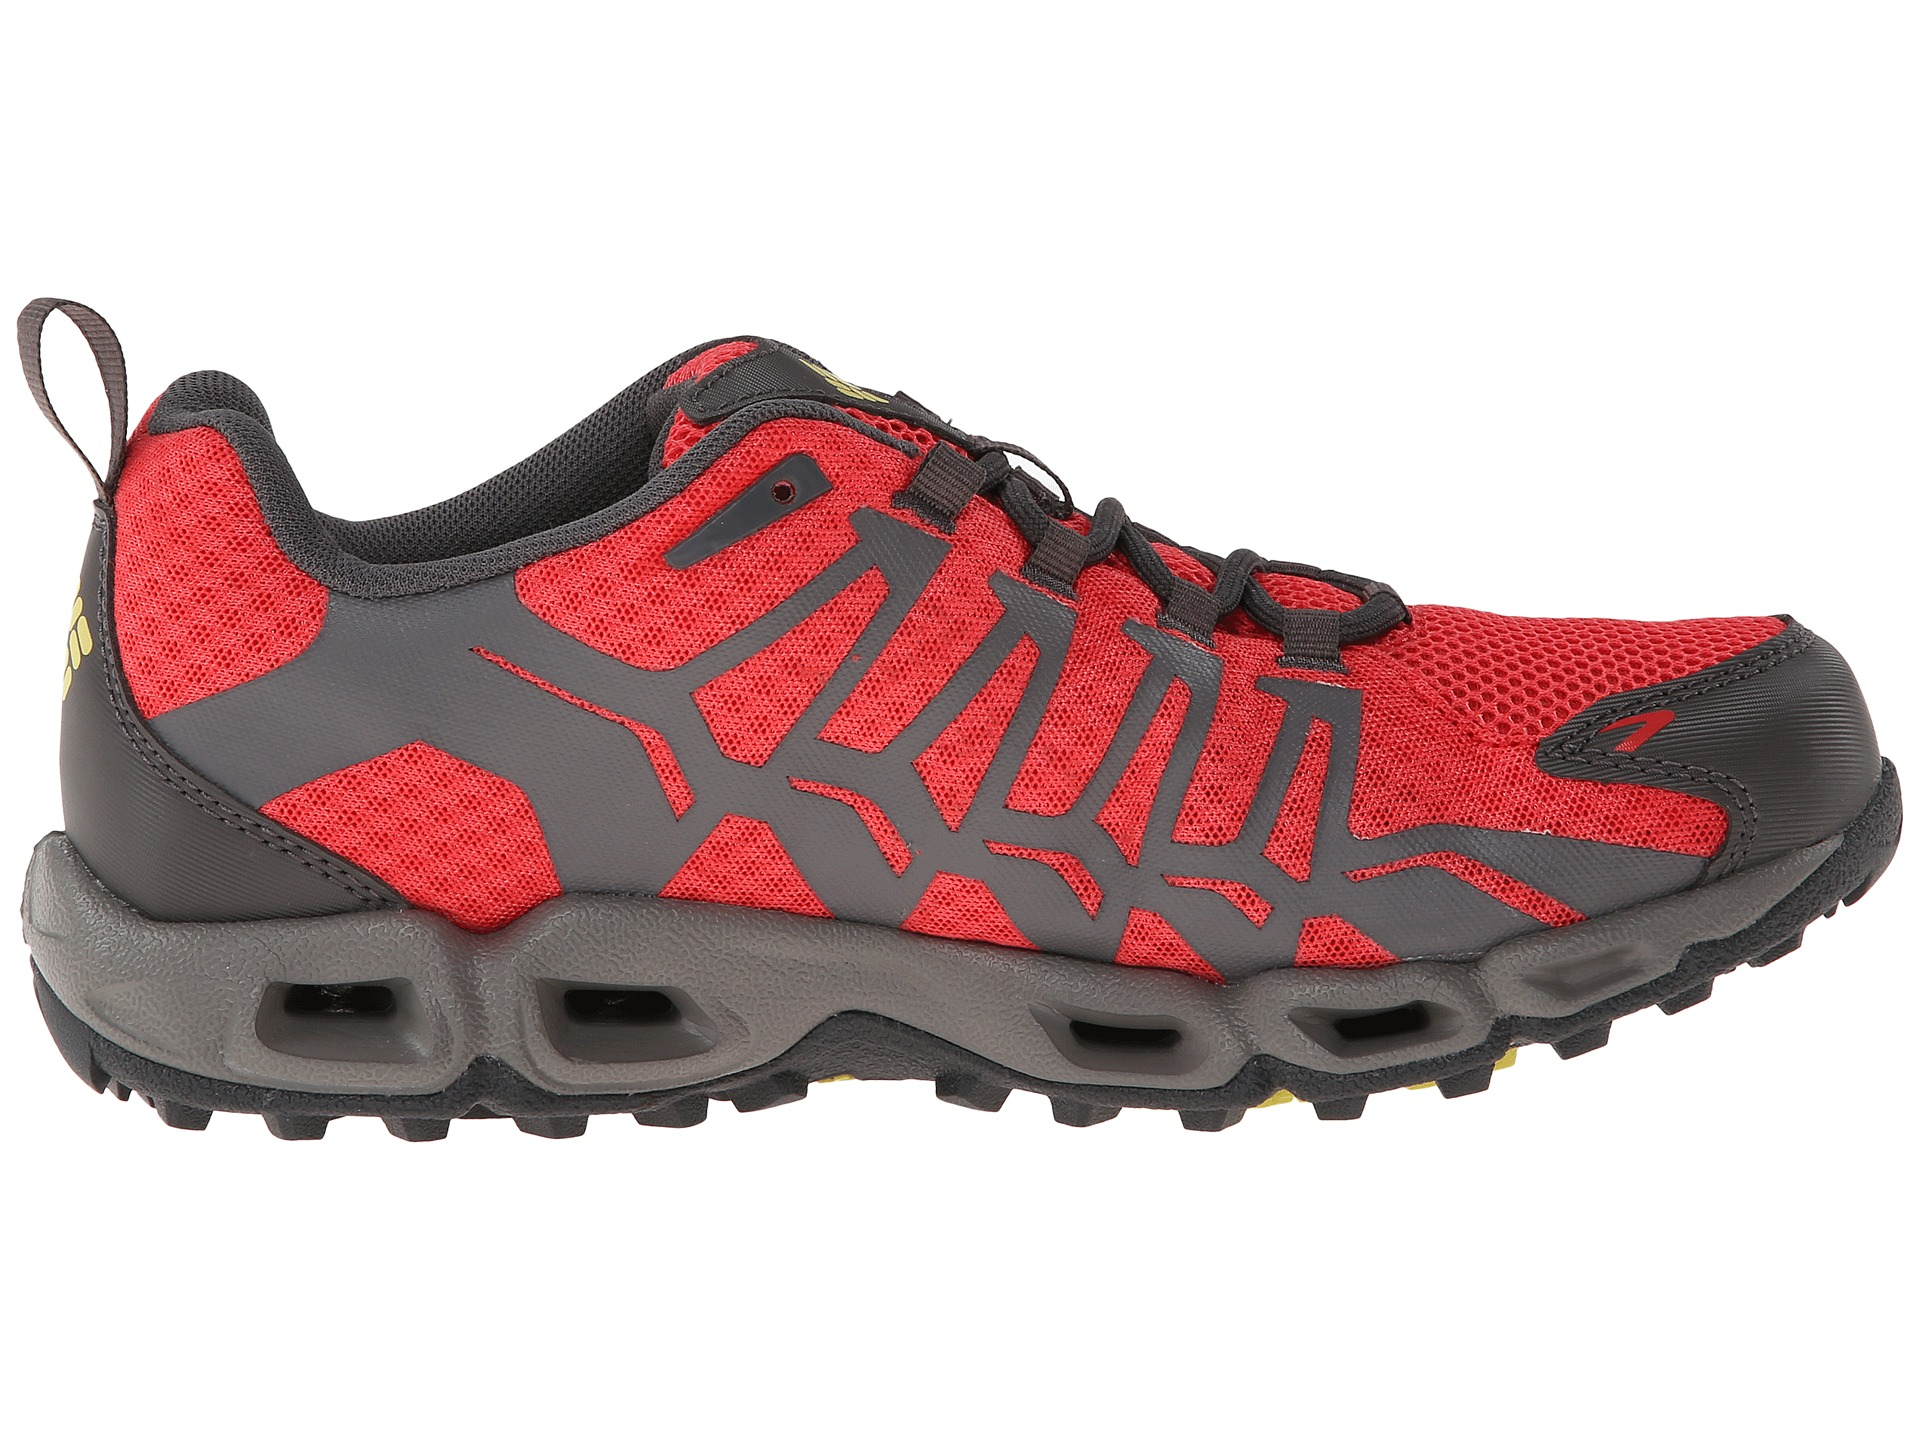 Hiking Shoes For Men Reviews Locomotive Firemens Magazine